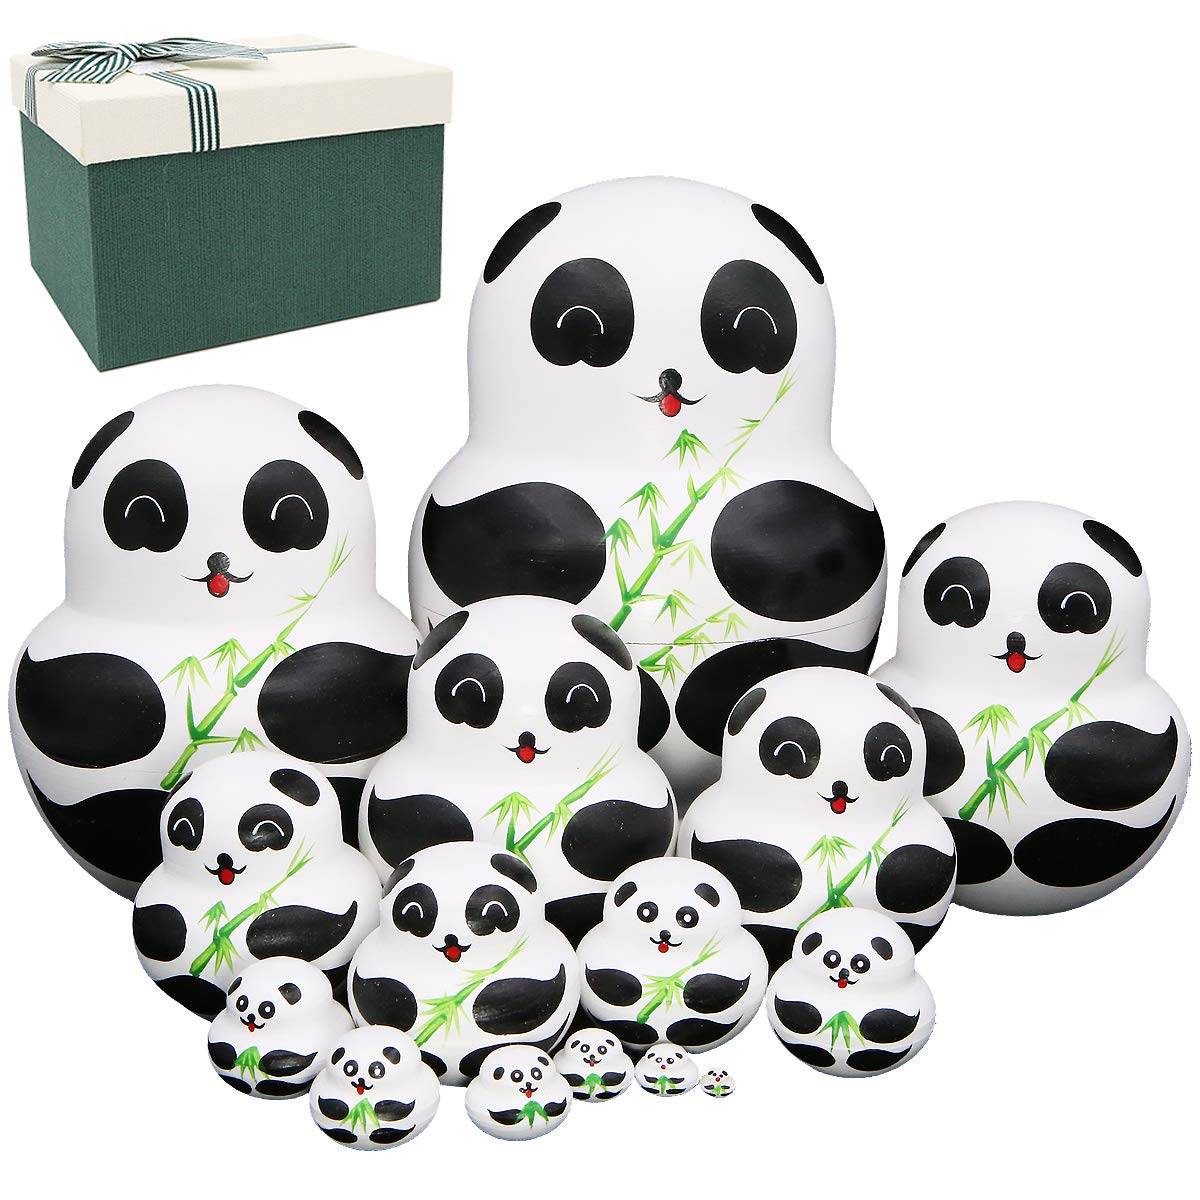 Apol Set of 15 Panda Bear with Bamboo Nesting Dolls Big-Belly Wooden Handmade Matryoshka Russian Doll in a Box with Bow for Kids Toy Home Decoration Year